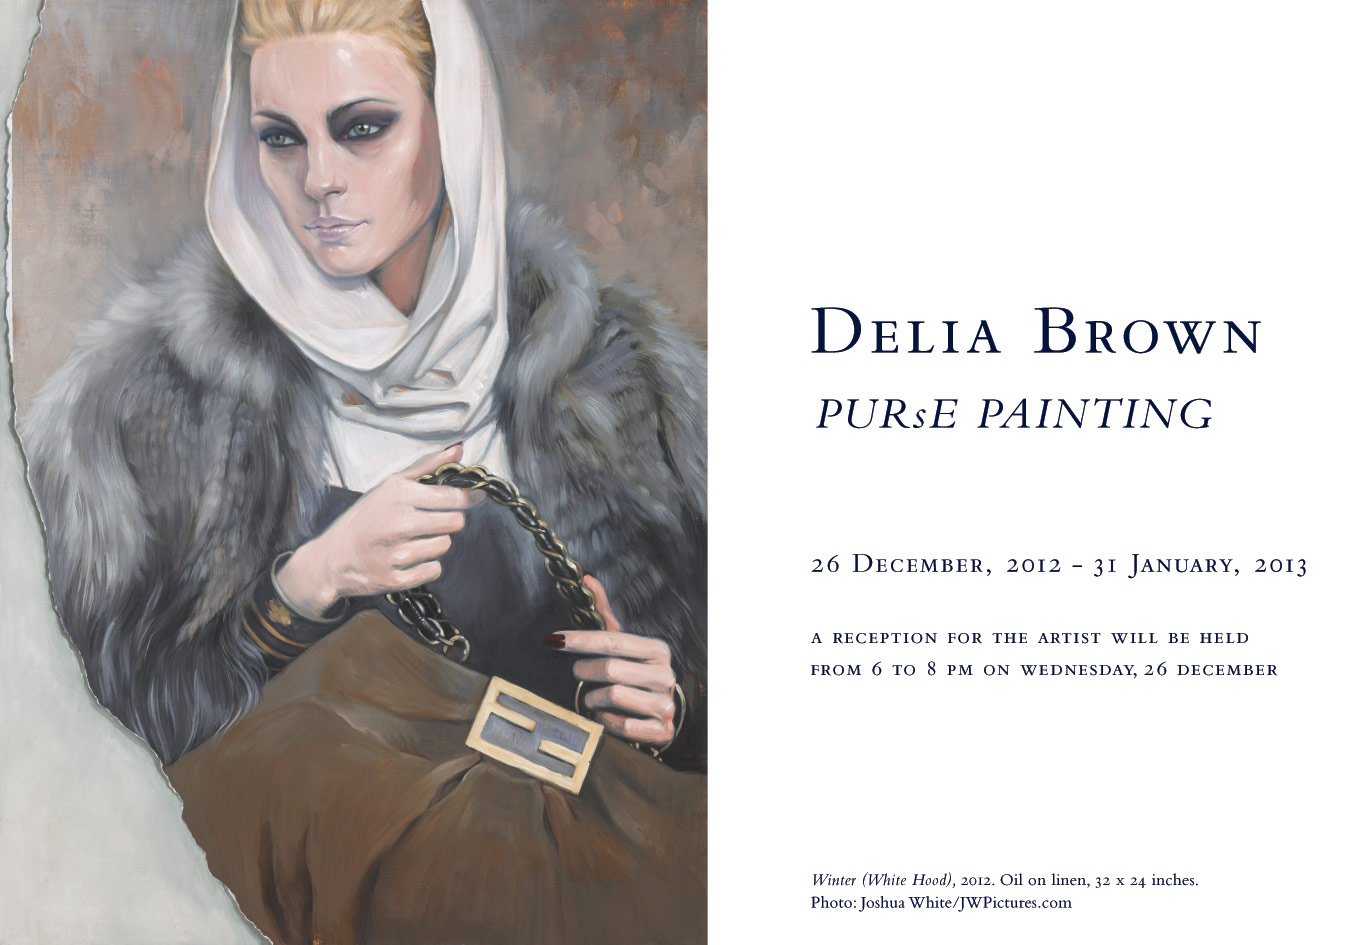 Delia Brown, PURsE PAINTING, at the Baldwin Gallery, Aspen, December 26, 2012 – January 31, 2013